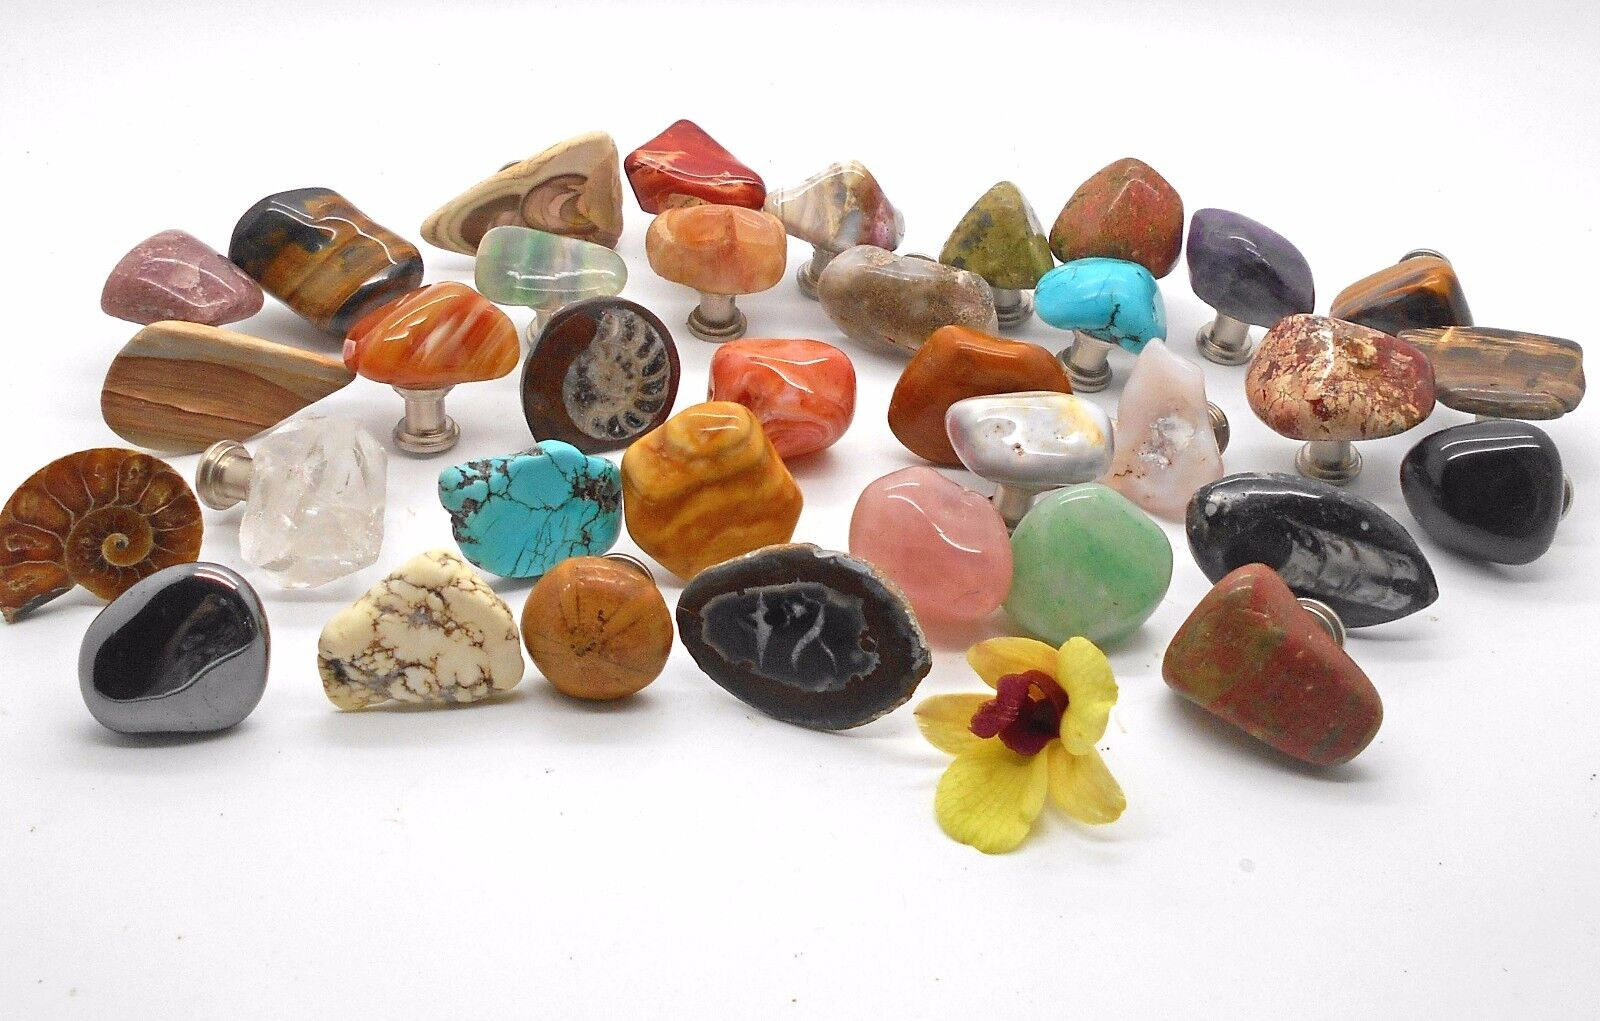 48 Assorted Polished Stone Cabinet Knobs and Drawer Pulls